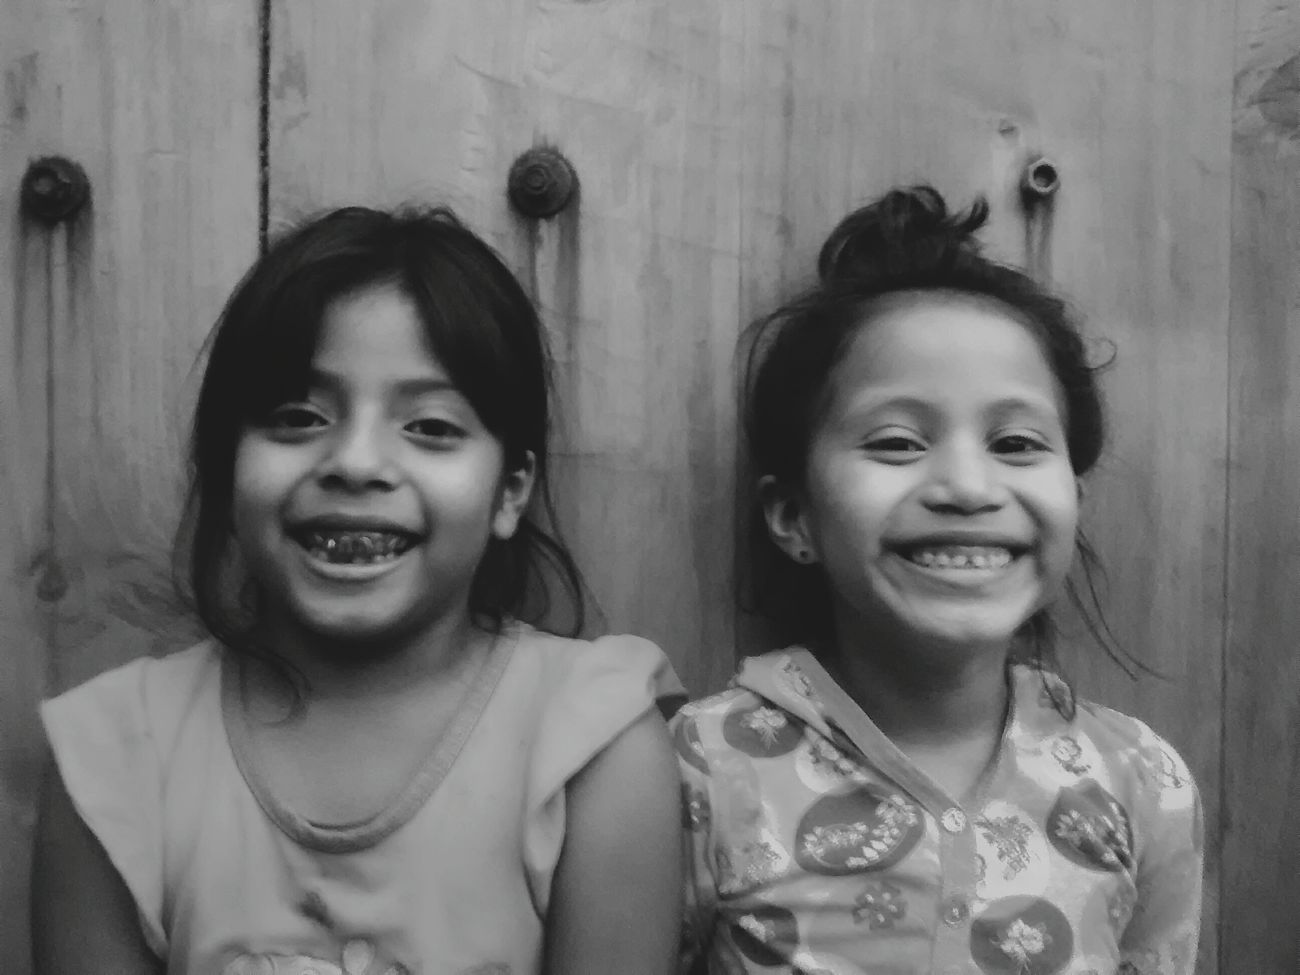 Forever Live Child Free Guatemalawoman Kids Liberty Madein502